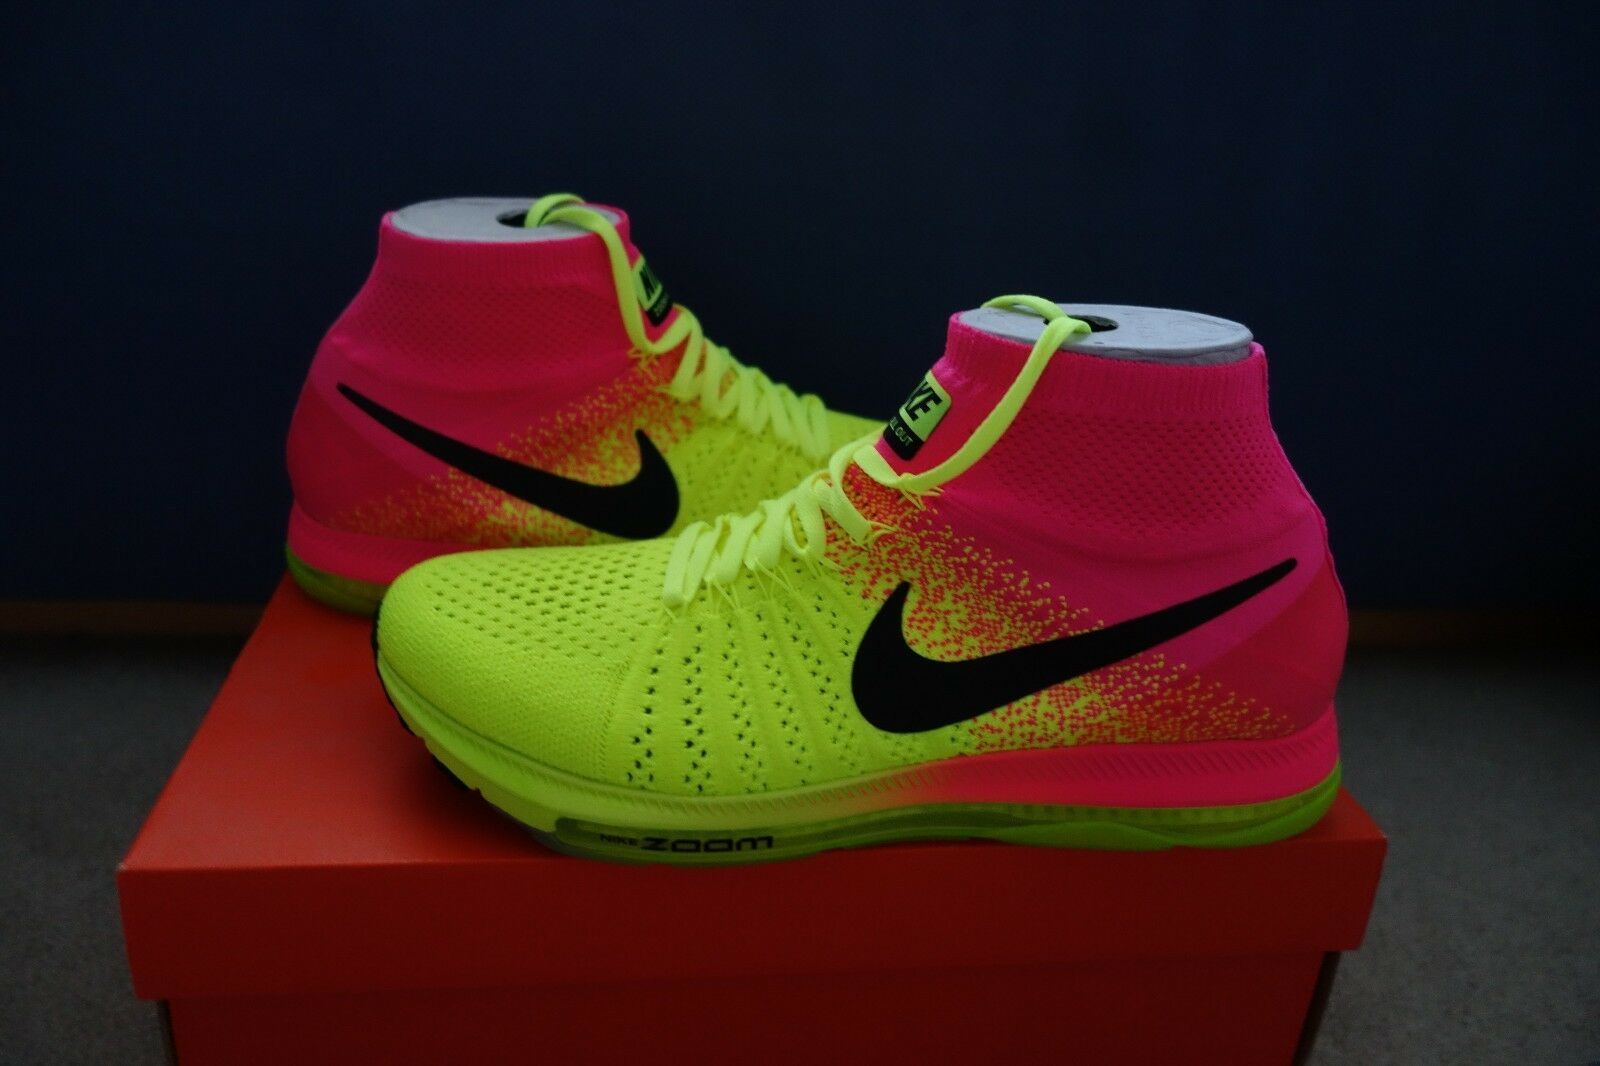 Nike Zoom All Out Flyknit OC Unlimited size 9.5 845716-999